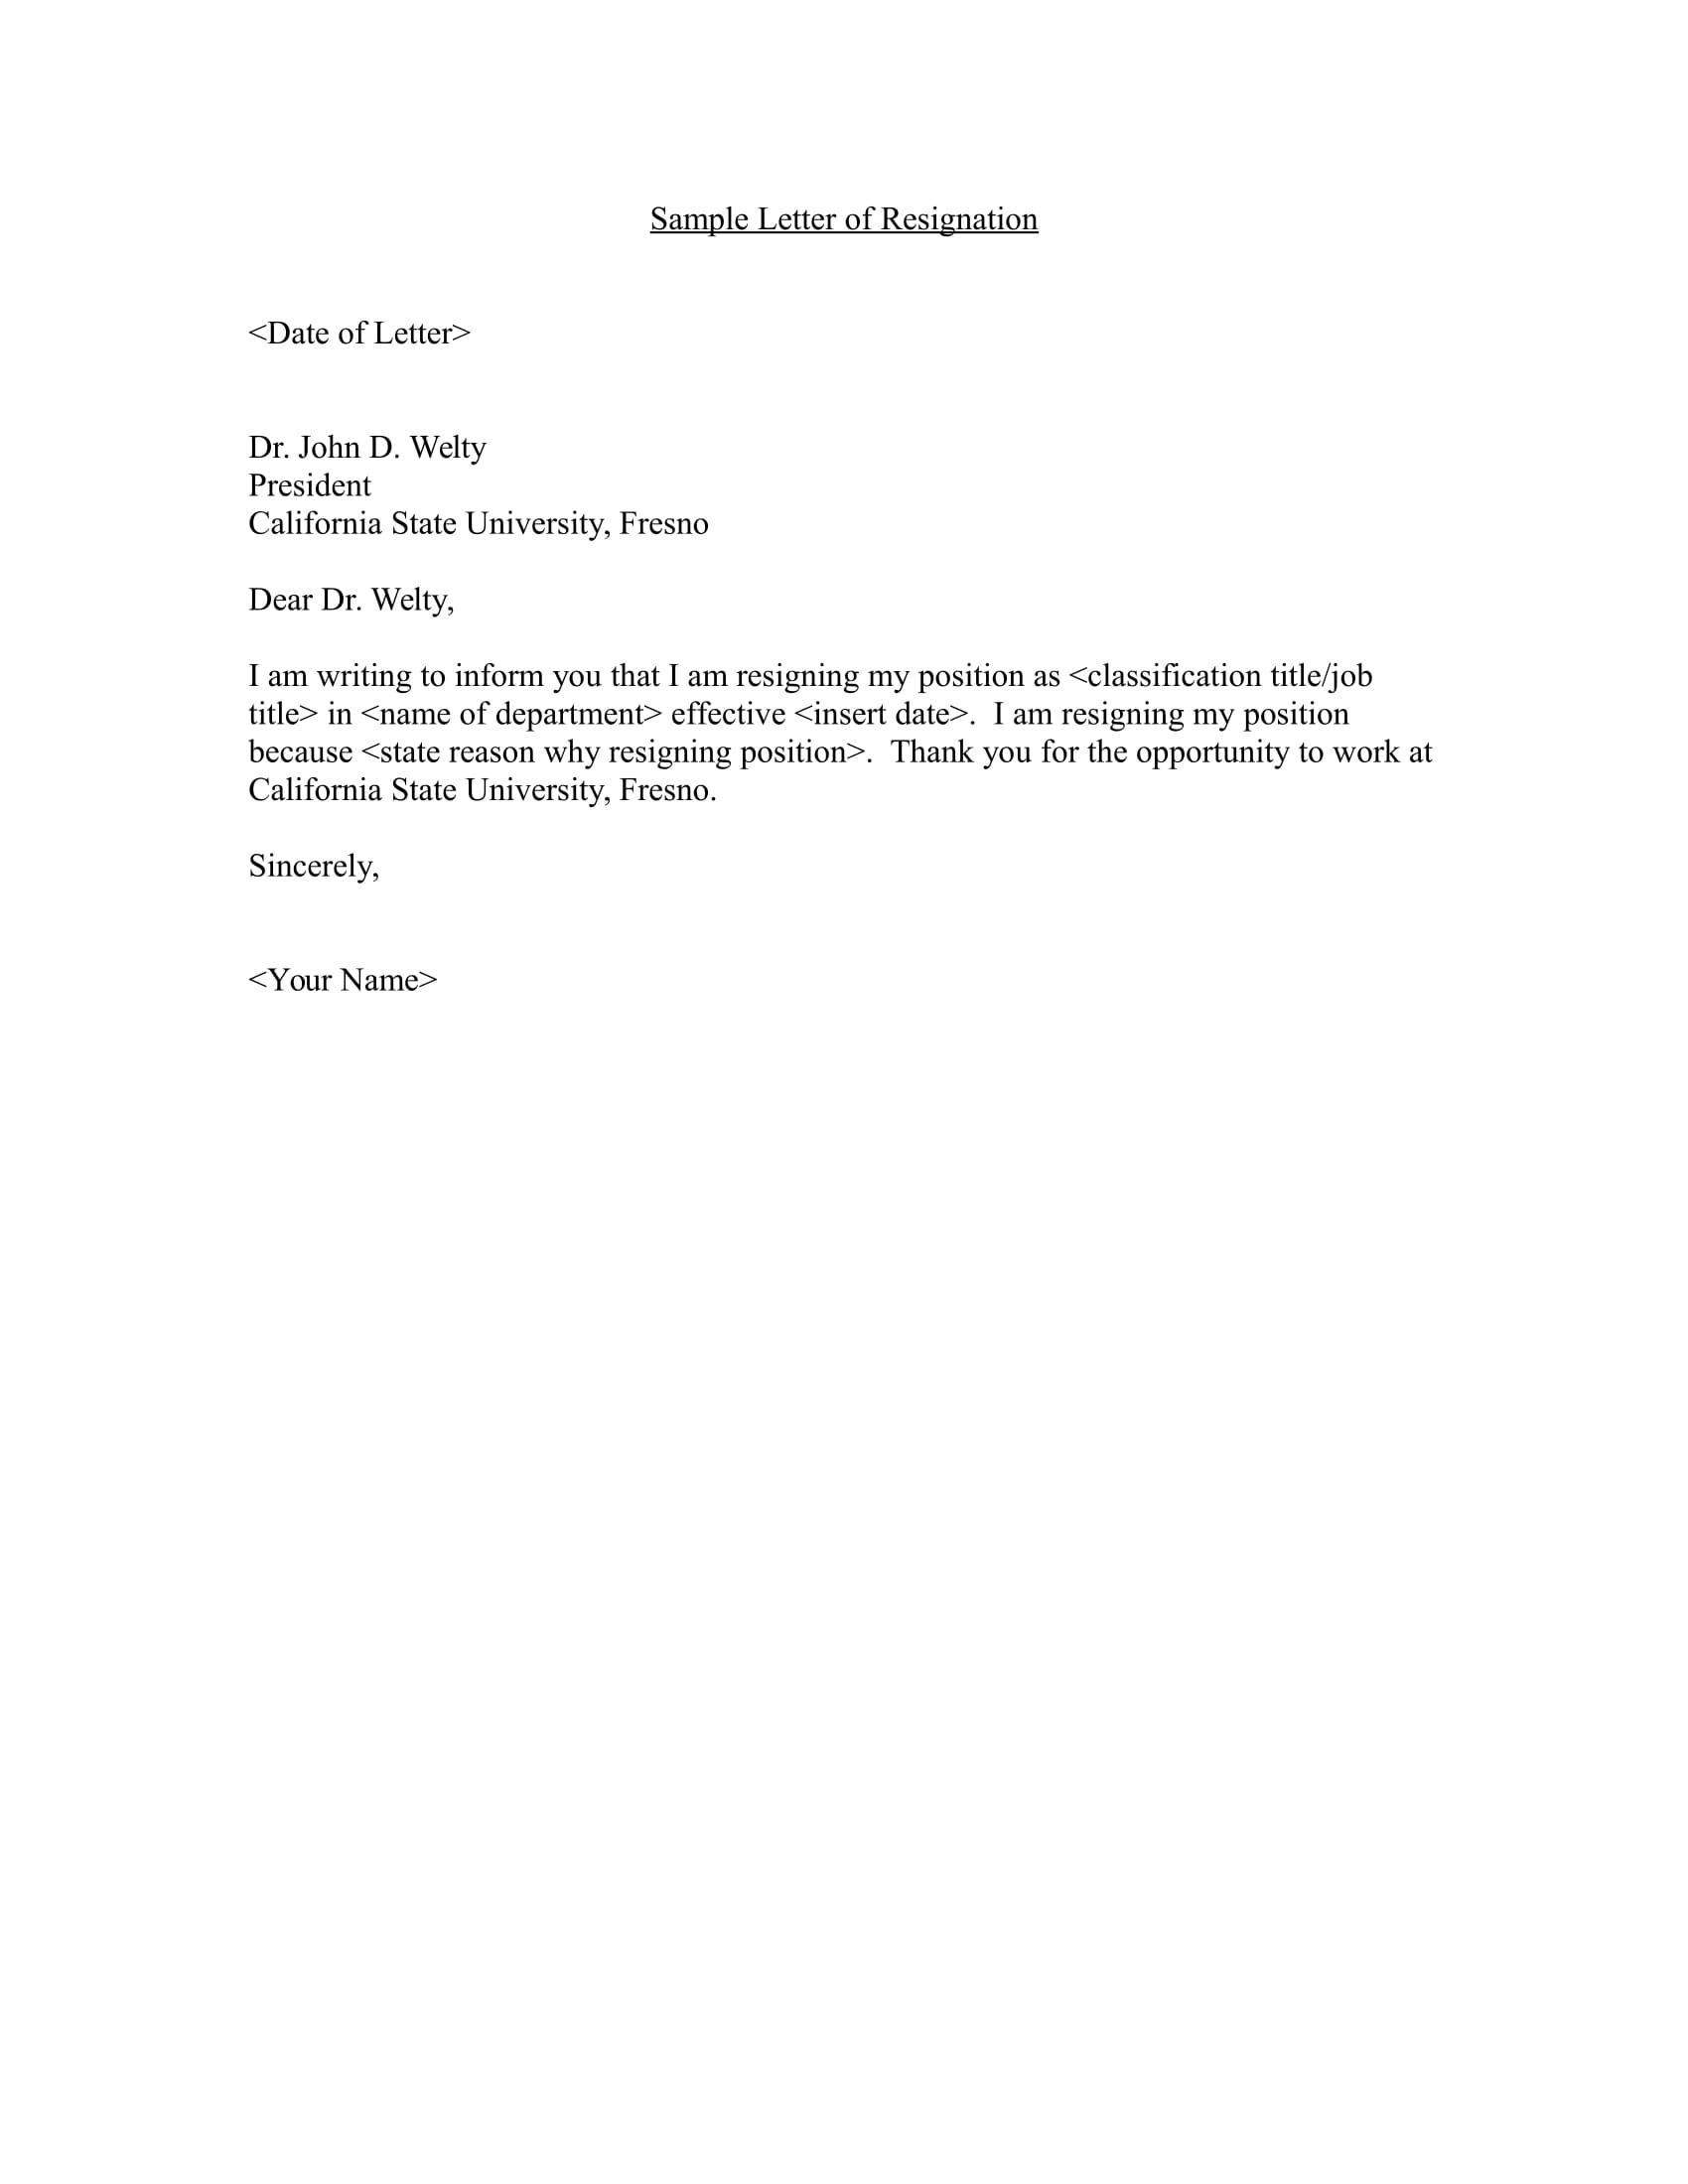 simple resignation letter sample with reason 35 simple resignation letter examples pdf word examples 25394 | Sample.Letter.of .Employee.Resignation.Faculty 1